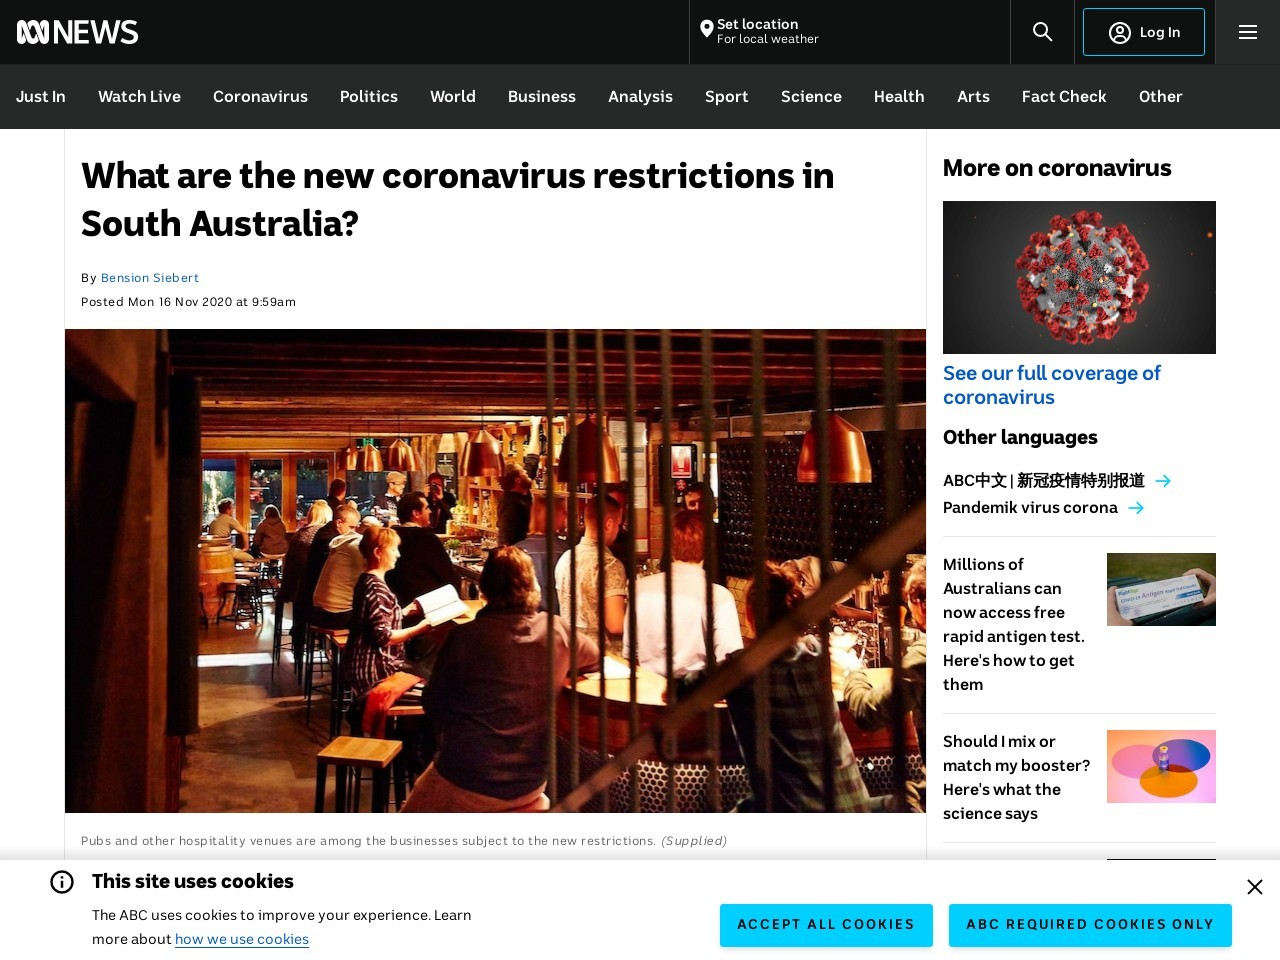 What are the new coronavirus restrictions in South Australia?